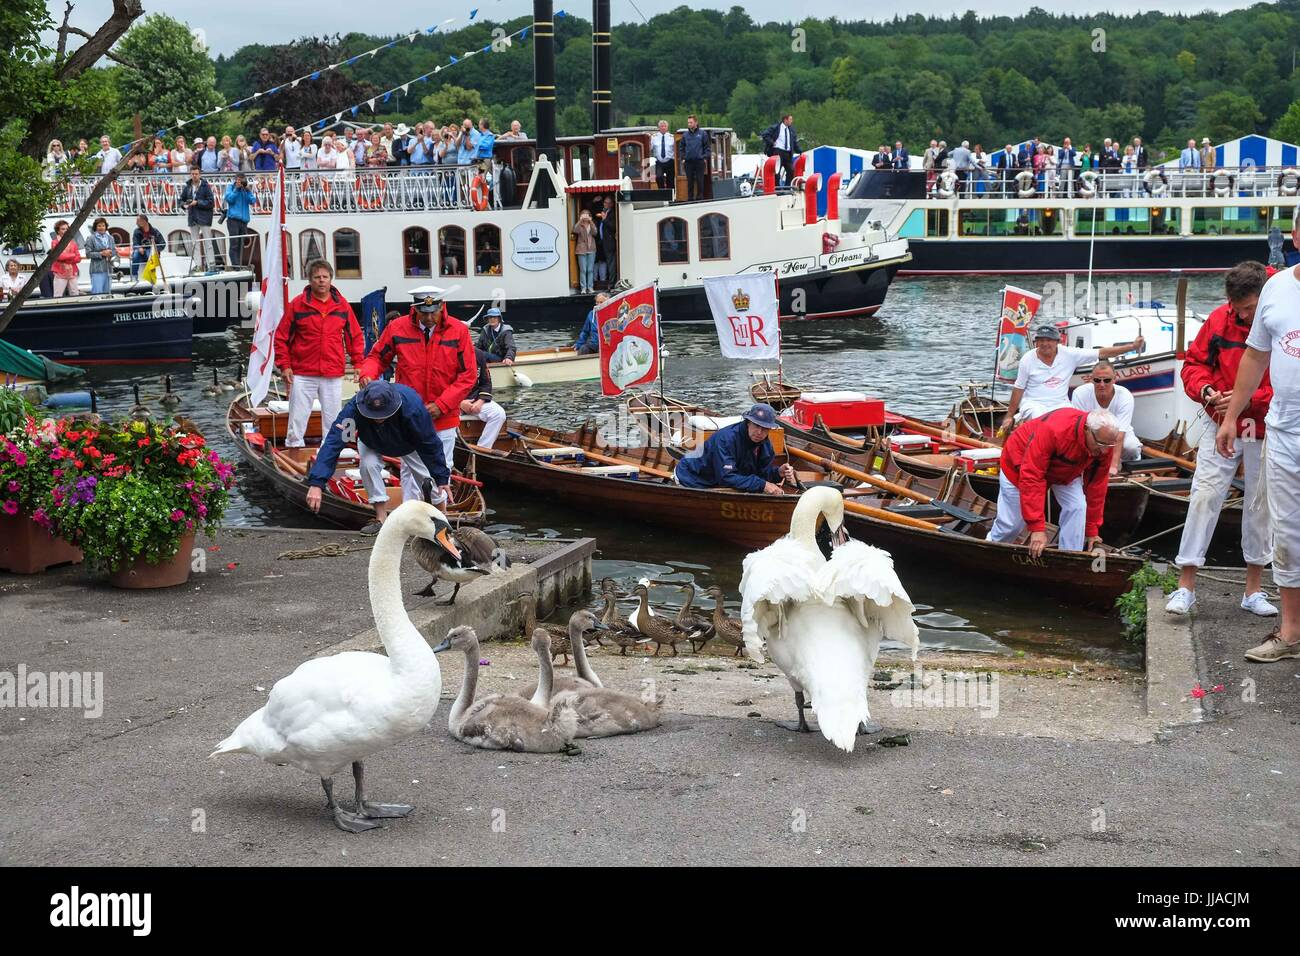 Henley on Thames, UK 19th July 2017. The Queens Swan Uppers arrive at Henley on Thames on the third day of the swan - Stock Image